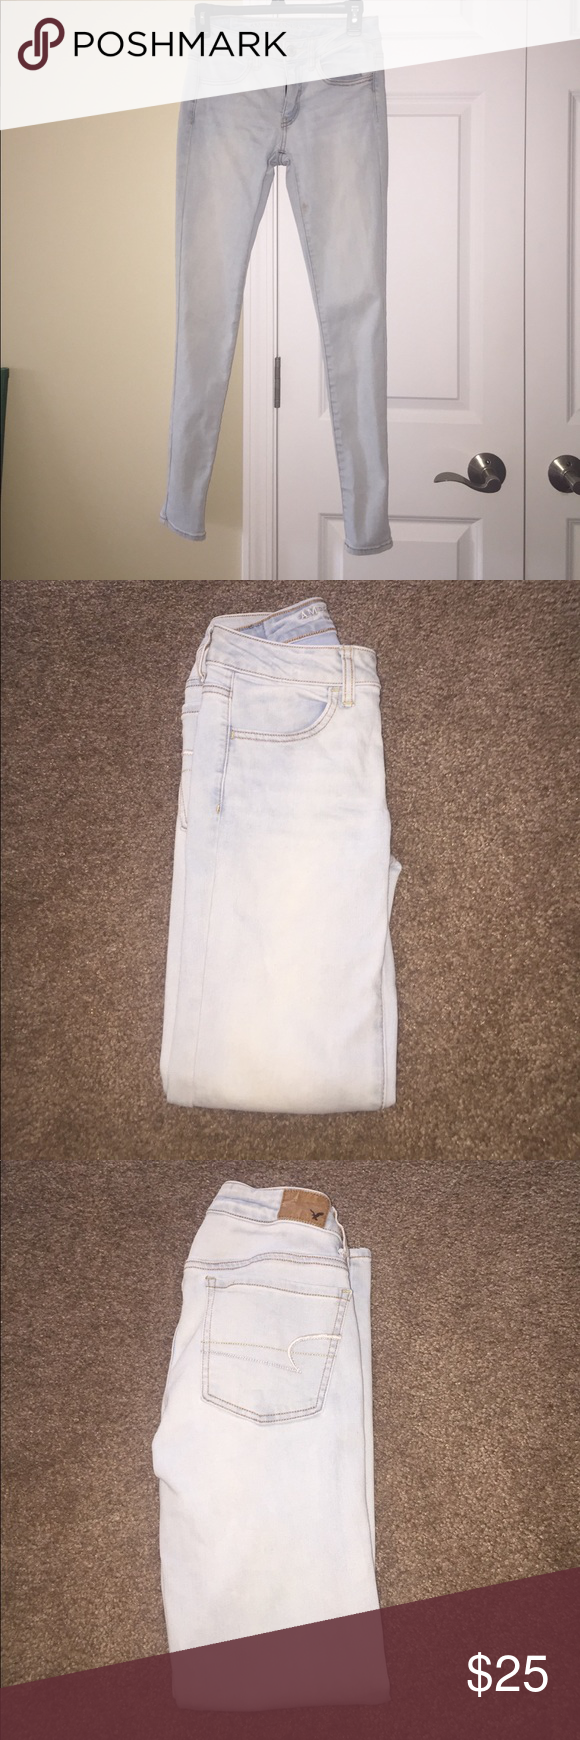 AEO Light Wash Jeans Women's AEO Jeans: Jegging, Regular Length Super Stretch, Light Wash, Worn American Eagle Outfitters Jeans Skinny